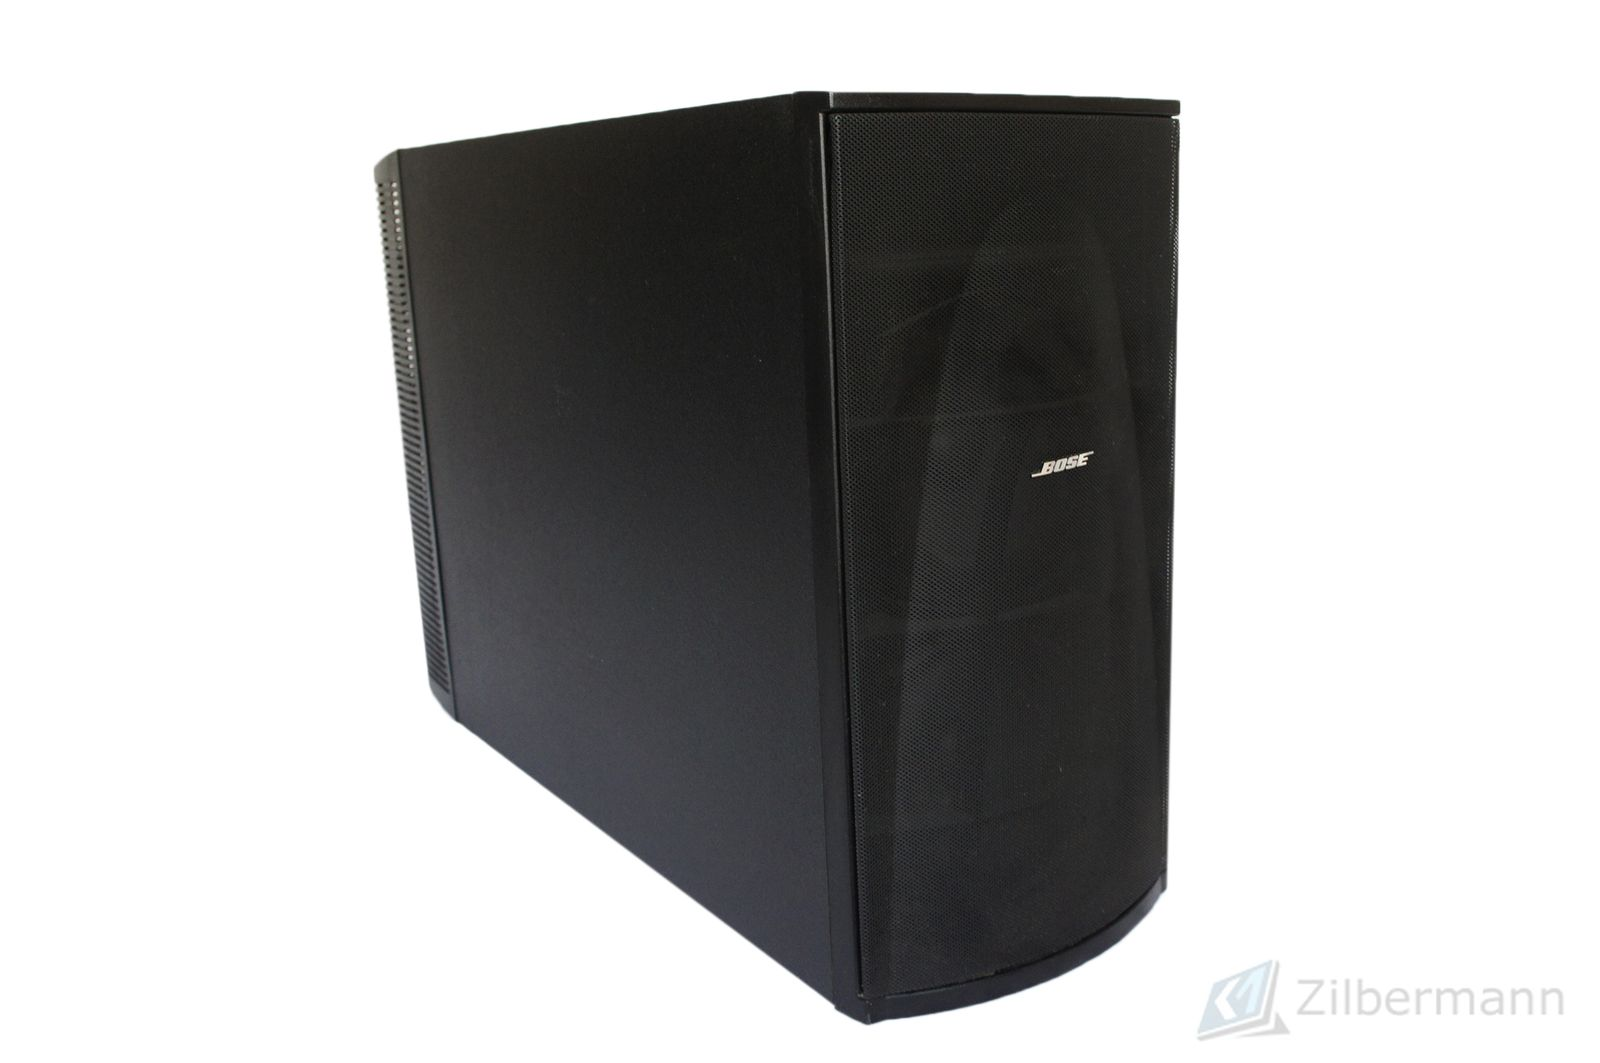 Bose_Lifestyle_18_Series_II_PS18_Powered_Heimkino-System_Subwoofer_02